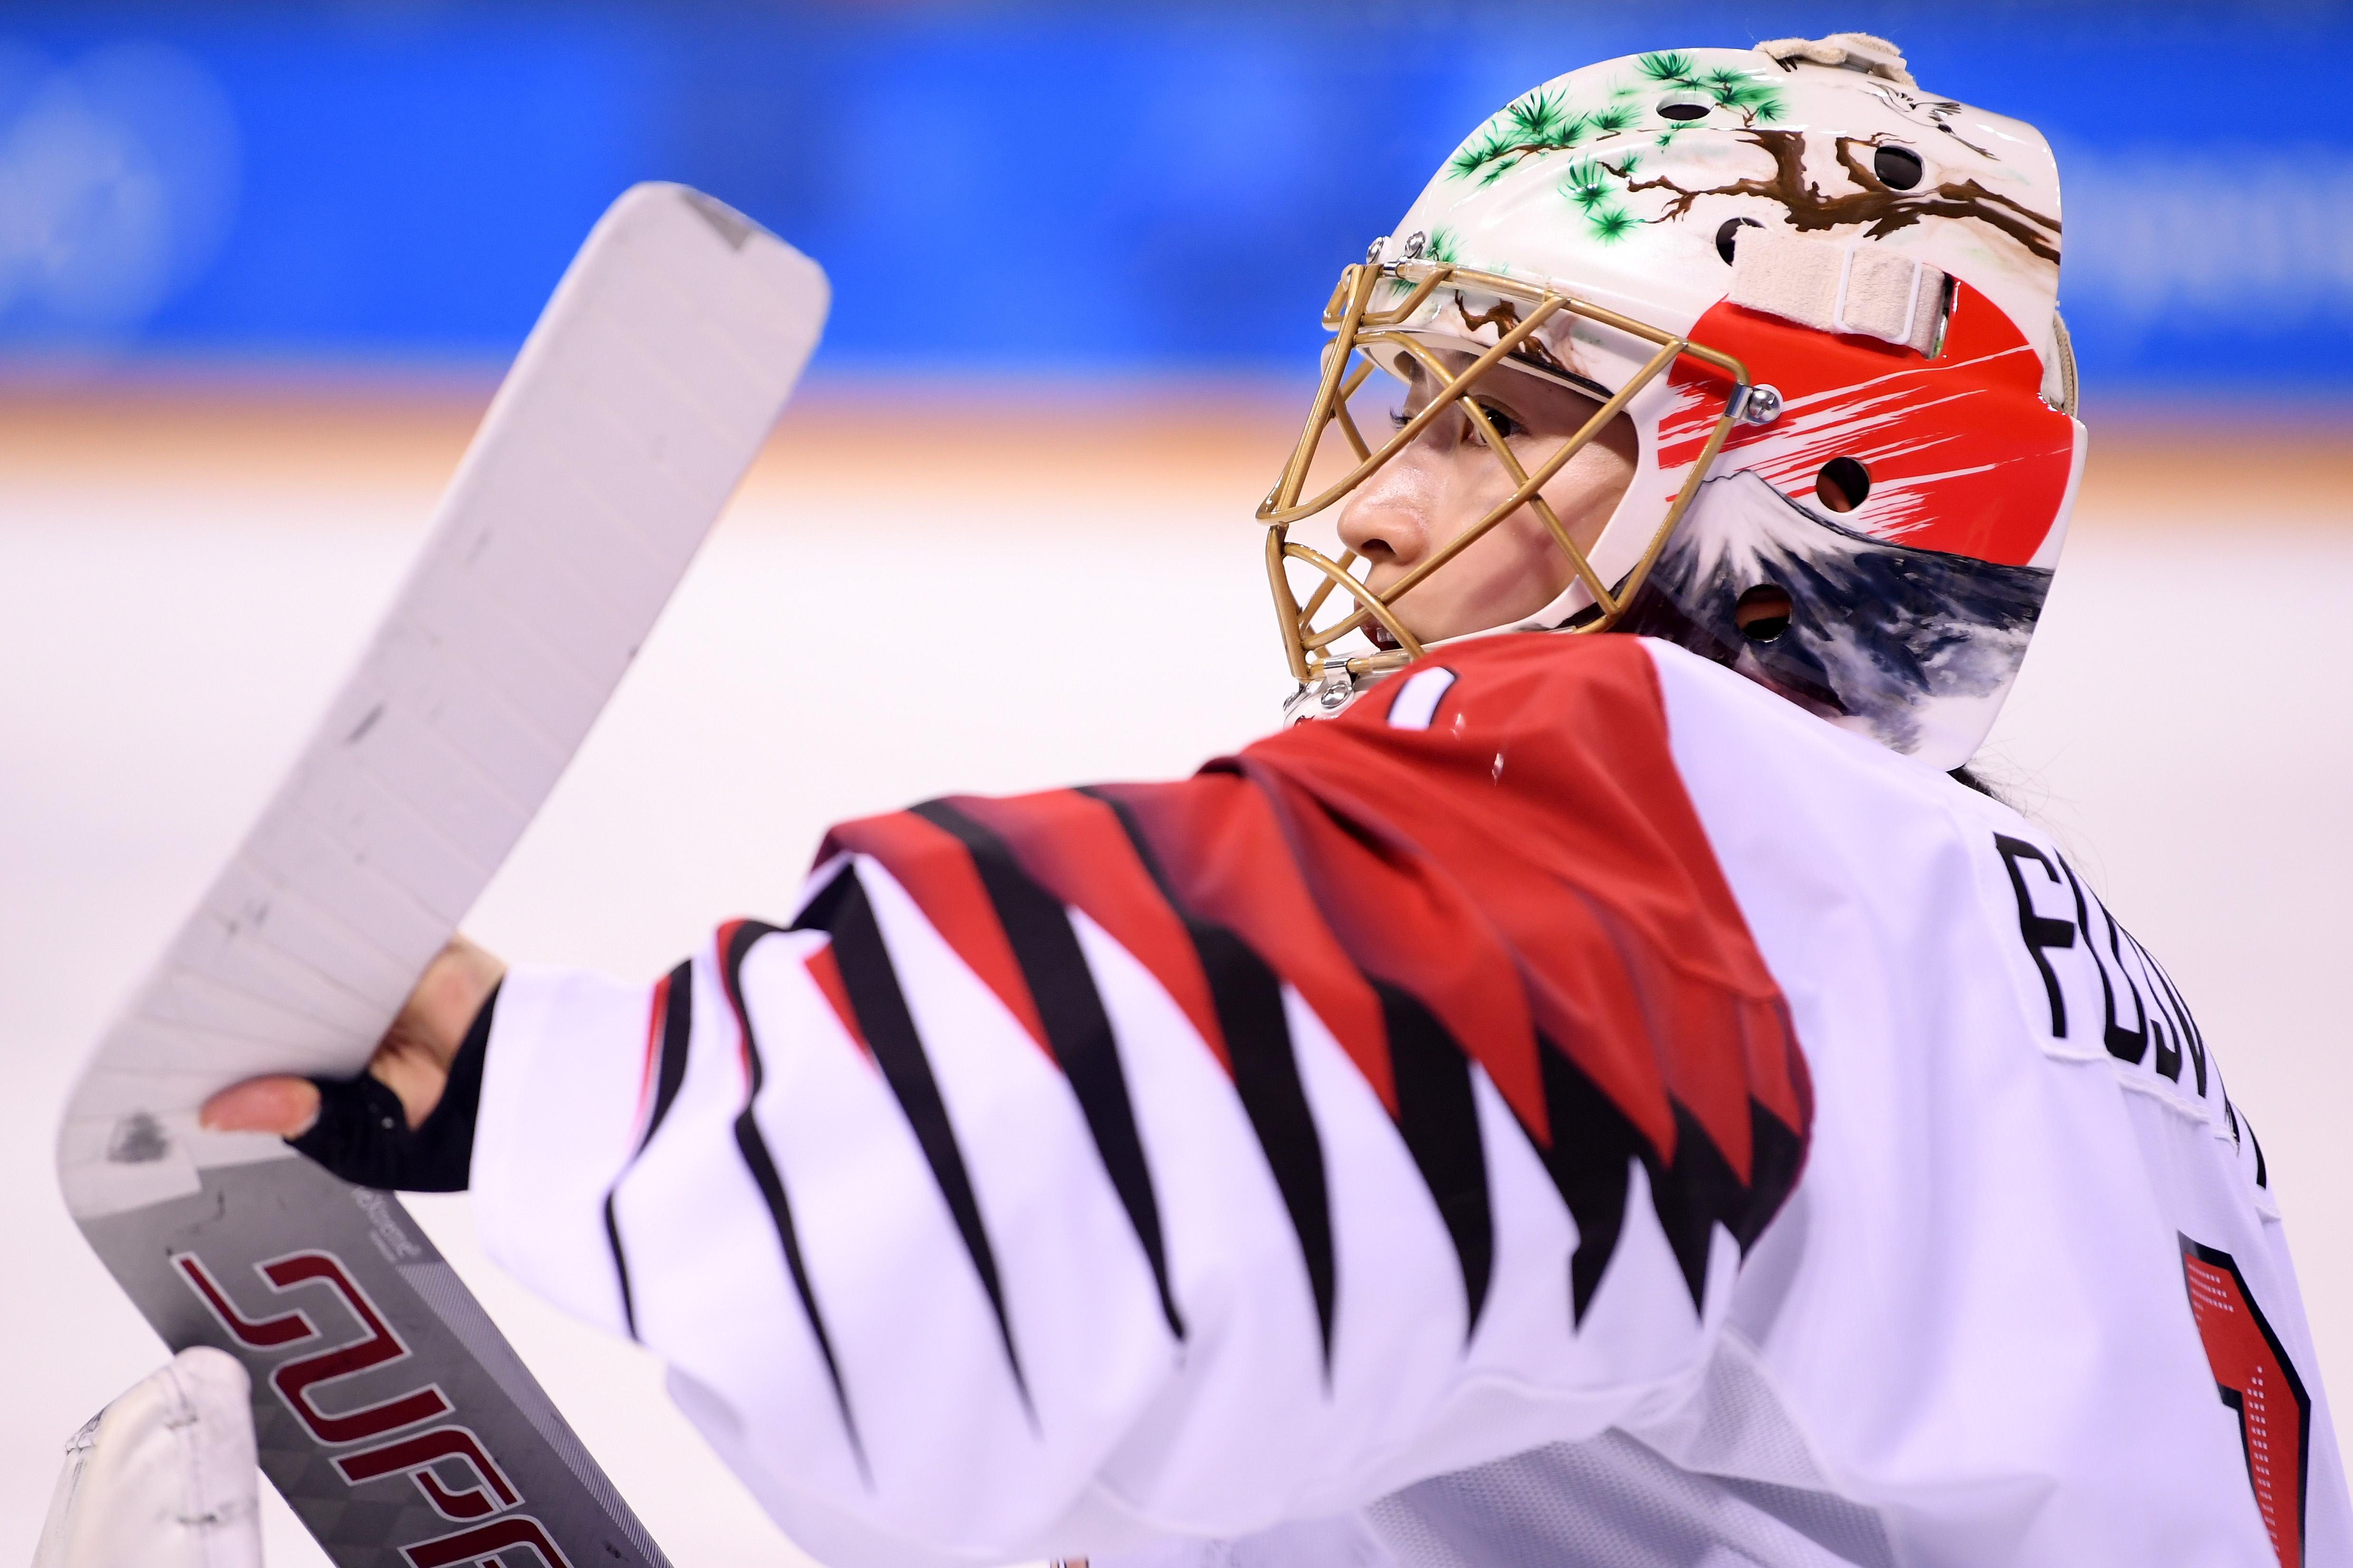 Nana Fujimoto #1 of Japan looks on in the third period against Switzerland during the Women's Ice Hockey Classification game